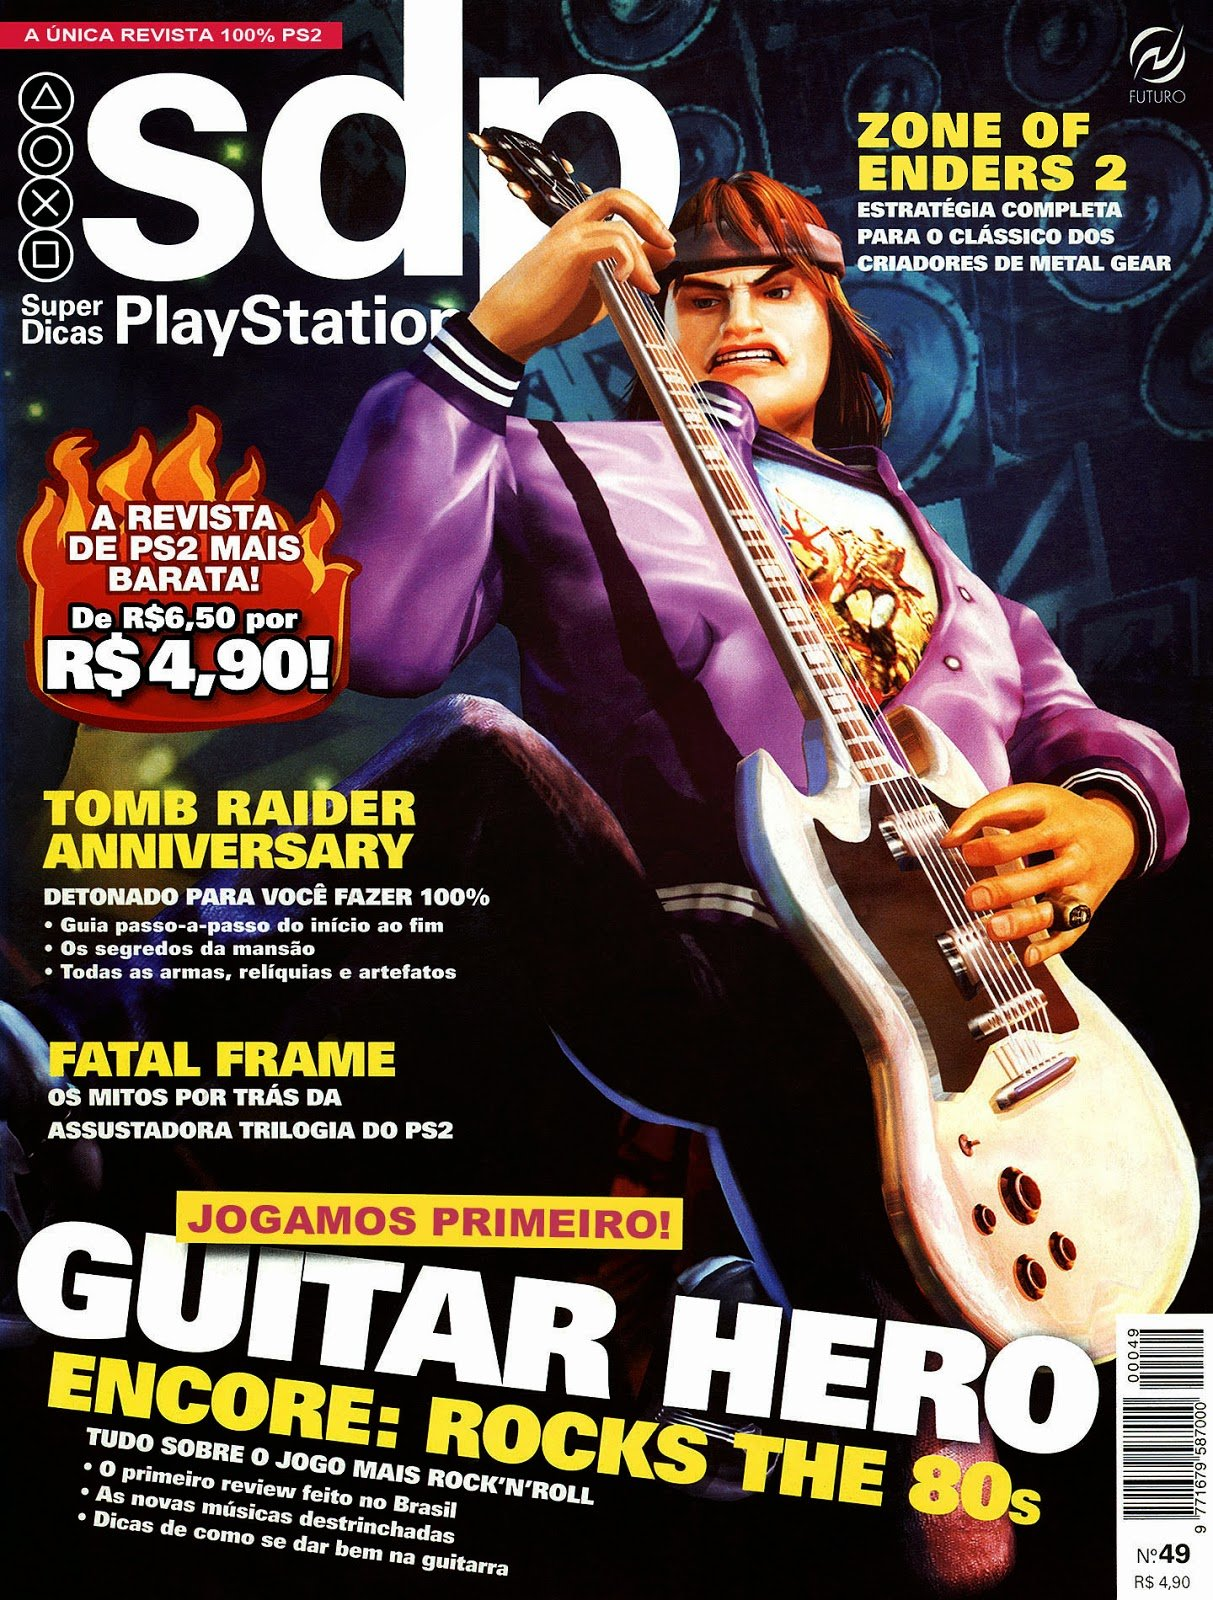 Super Dicas Playstation 49 (August 2007)